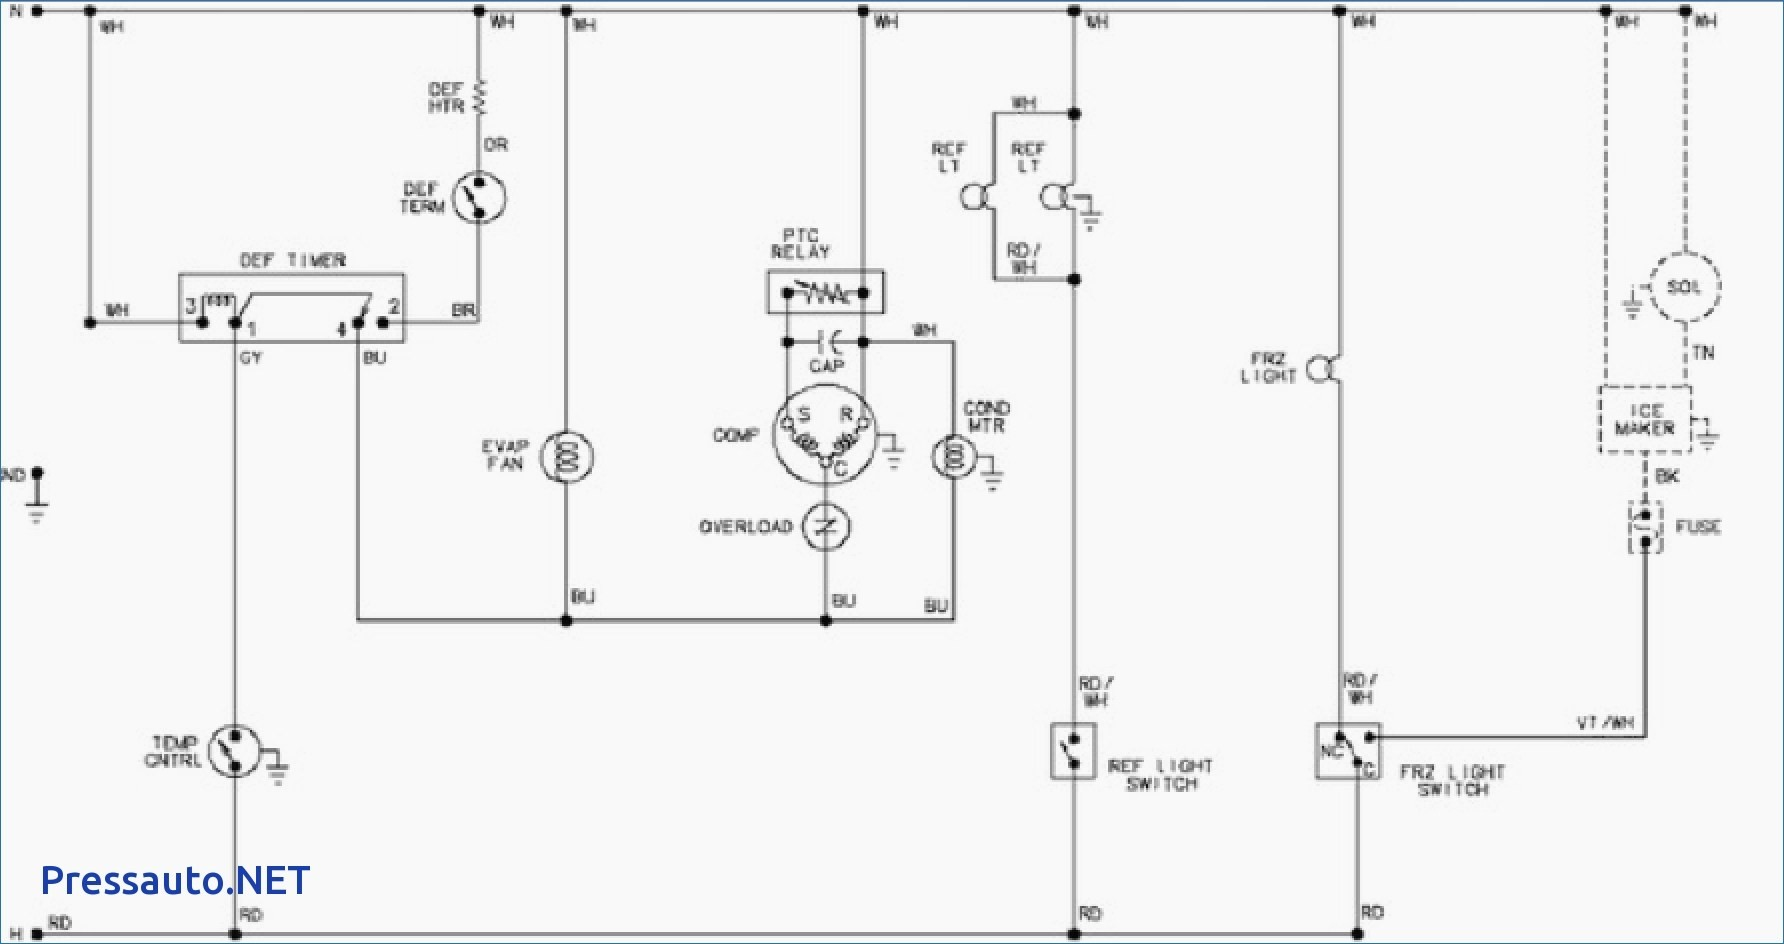 Wiring Diagram Of Refrigerator Pdf Great Installation Kitchenaid Schematic Library Rh 43 Budoshop4you De Kenmore